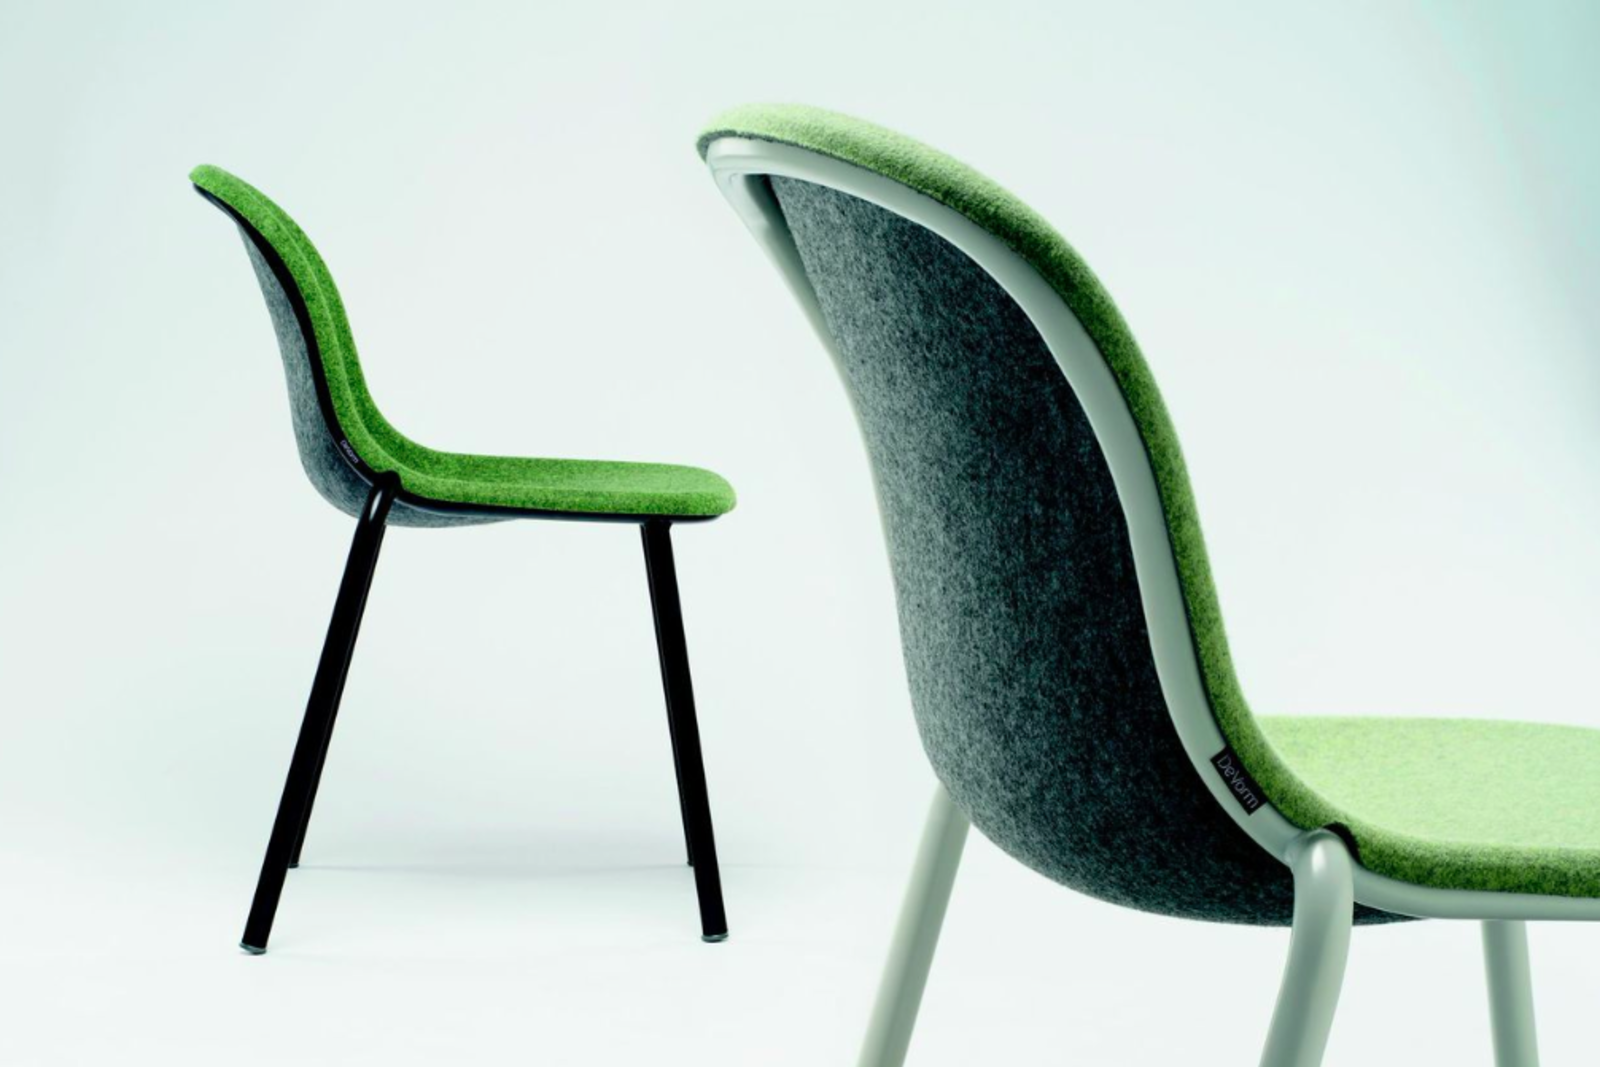 LJ chair by Laurens van Wieringen for De Vorm.  Dutch designer Laurens Van Wieringen married a powder-coated steel frame with a seat made of recycled PET bottles, and LJ was born. Van Wieringen, who is winning the game of repurposing cast-off materials, brings a discerning eye and a plethora of manufacturing acumen to the process of making this chair. Simple, good-looking AND recycled? Yes.  Best of the Best: immcologne 2015 by Amanda Dameron